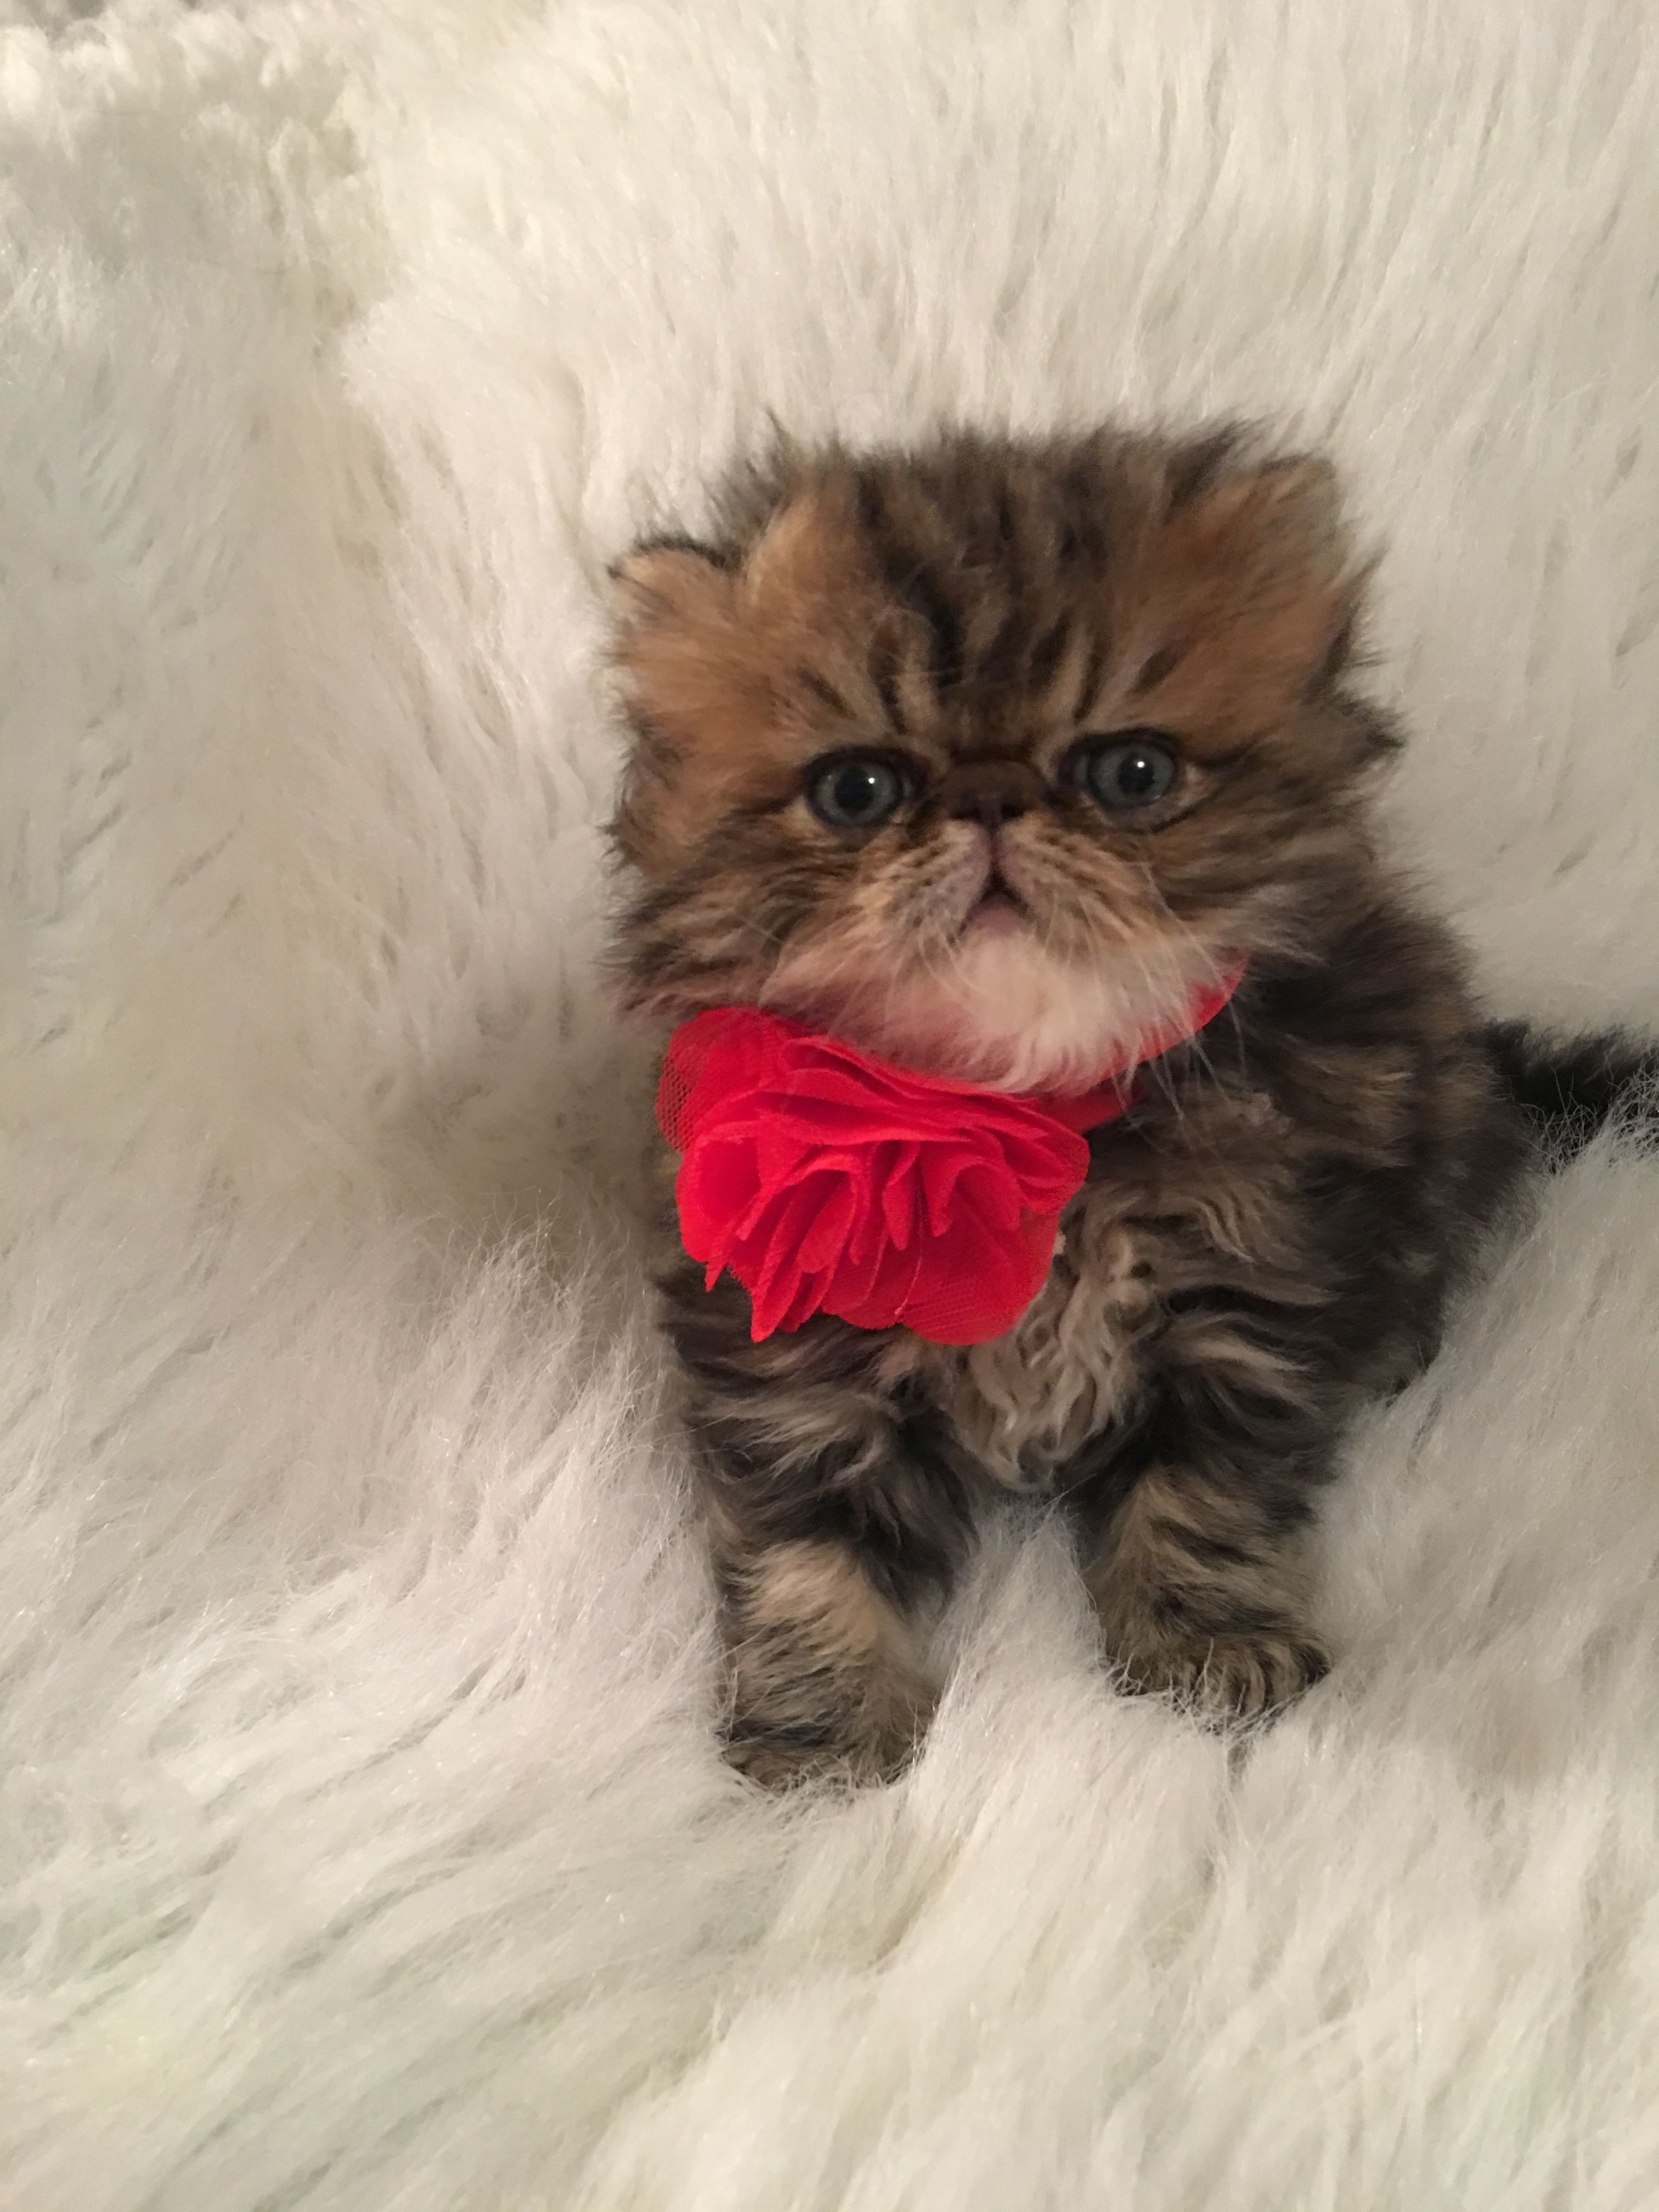 Pin By Pam Ferguson Mccloud On Cats Persian Cat Cats Meow Kittens